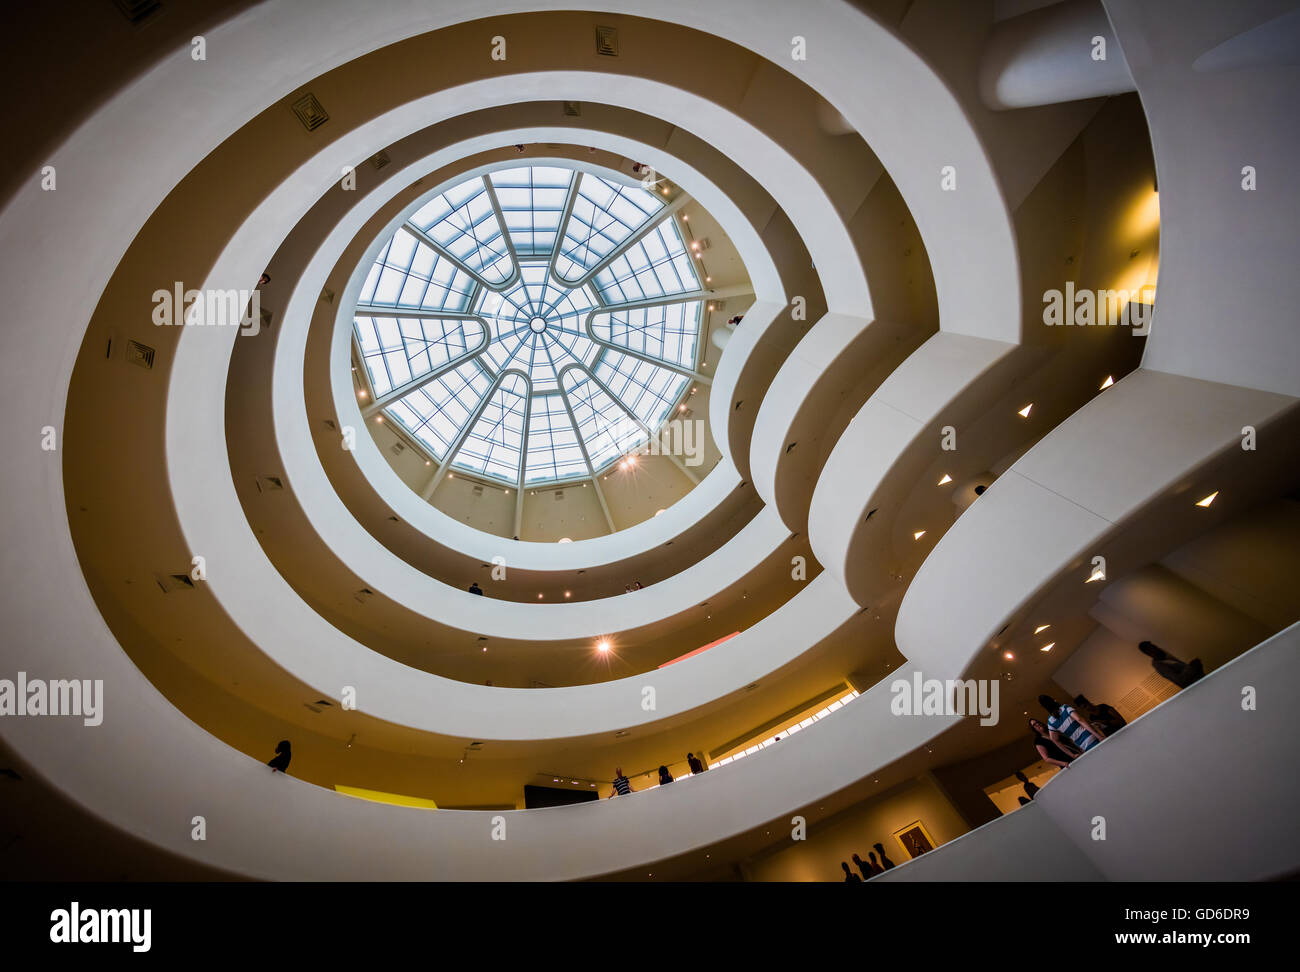 The Solomon R. Guggenheim Museum is an art museum located in New York City - Stock Image